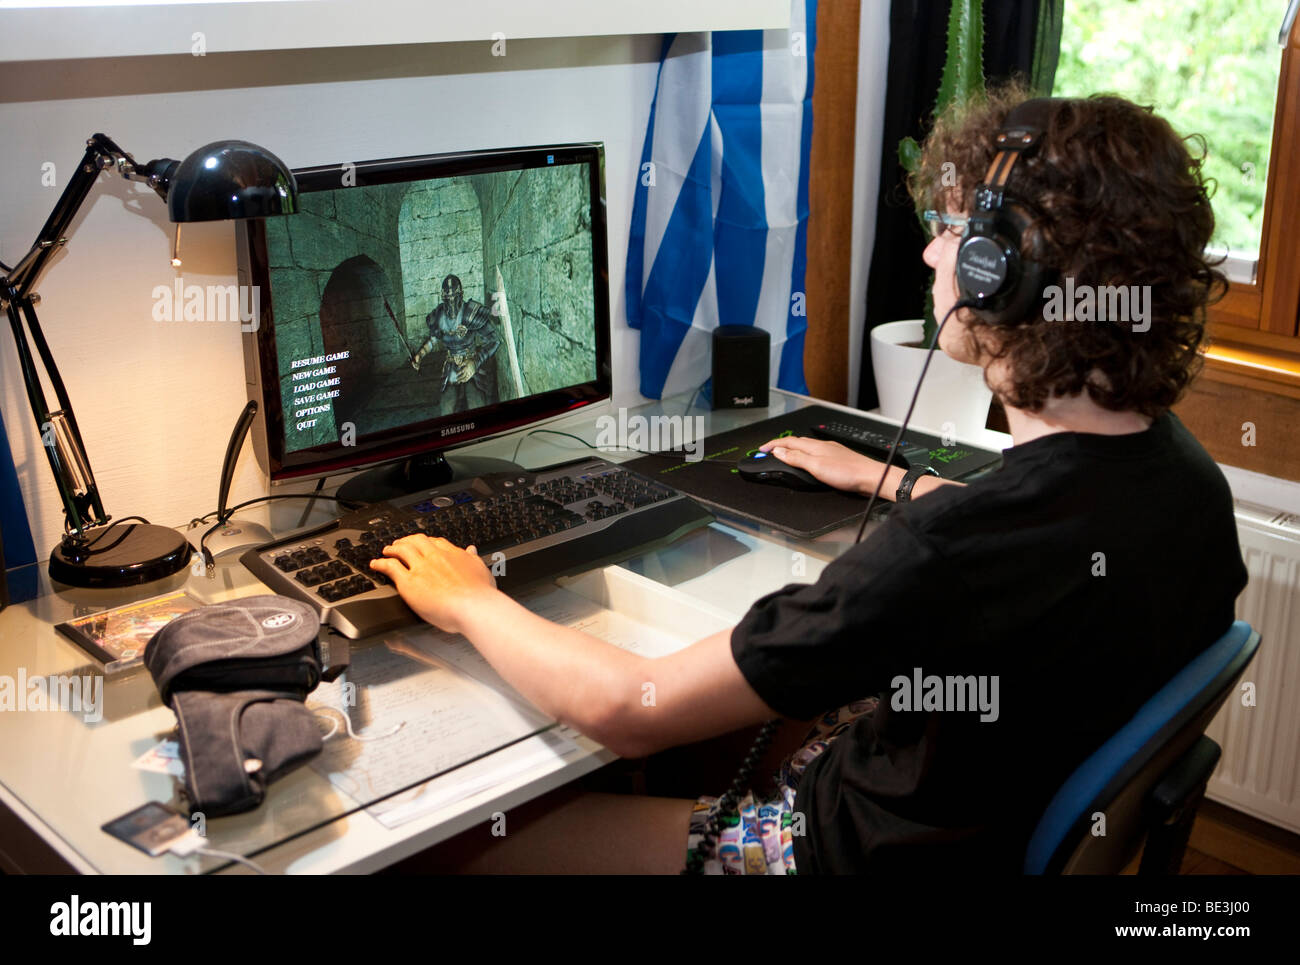 A boy, about 15, playing a violent game on the computer in his room, Germany, Europe - Stock Image